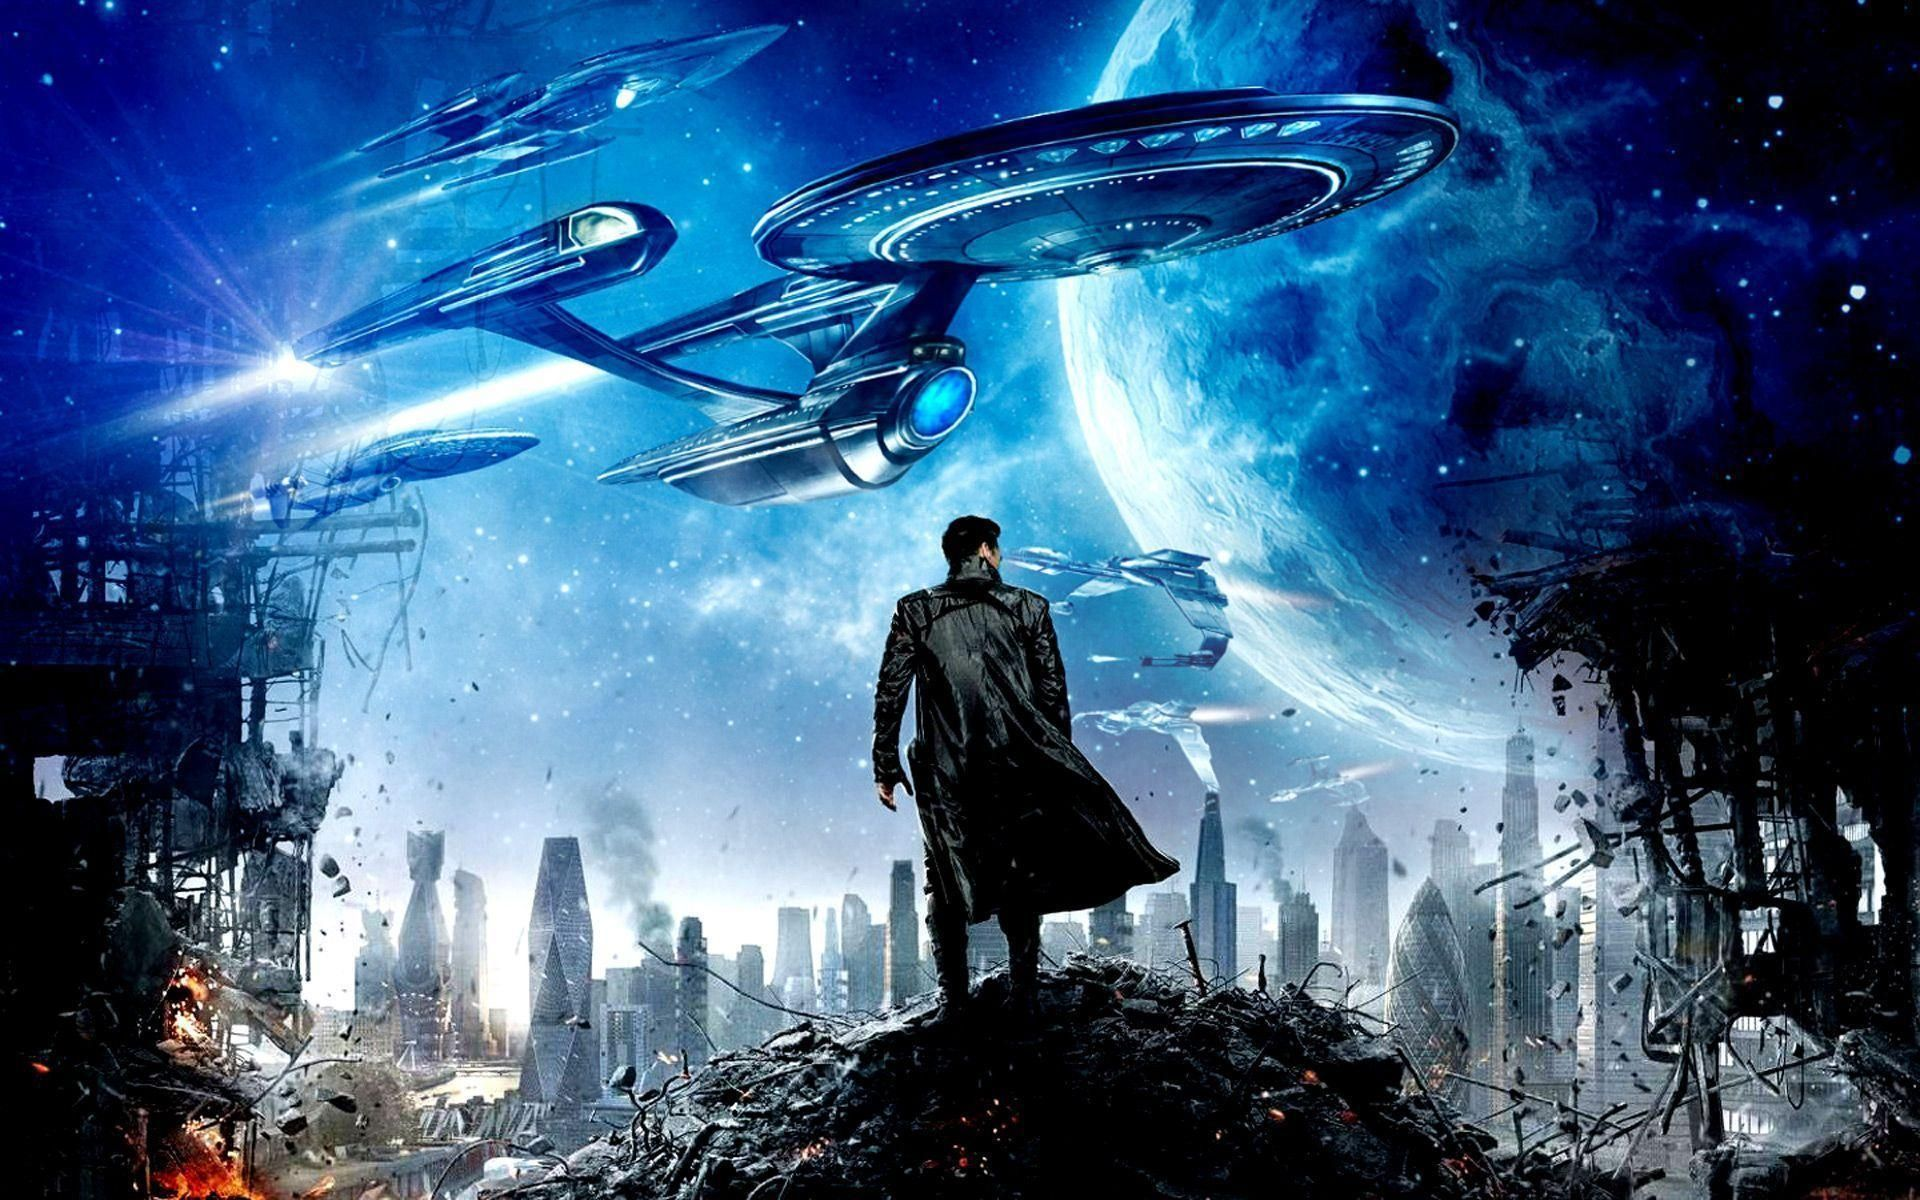 Star Trek Wallpaper Star Trek Wallpapers Hd Wallpaper Cave Star Trek Wallpaper Star Trek Star Trek Into Darkness